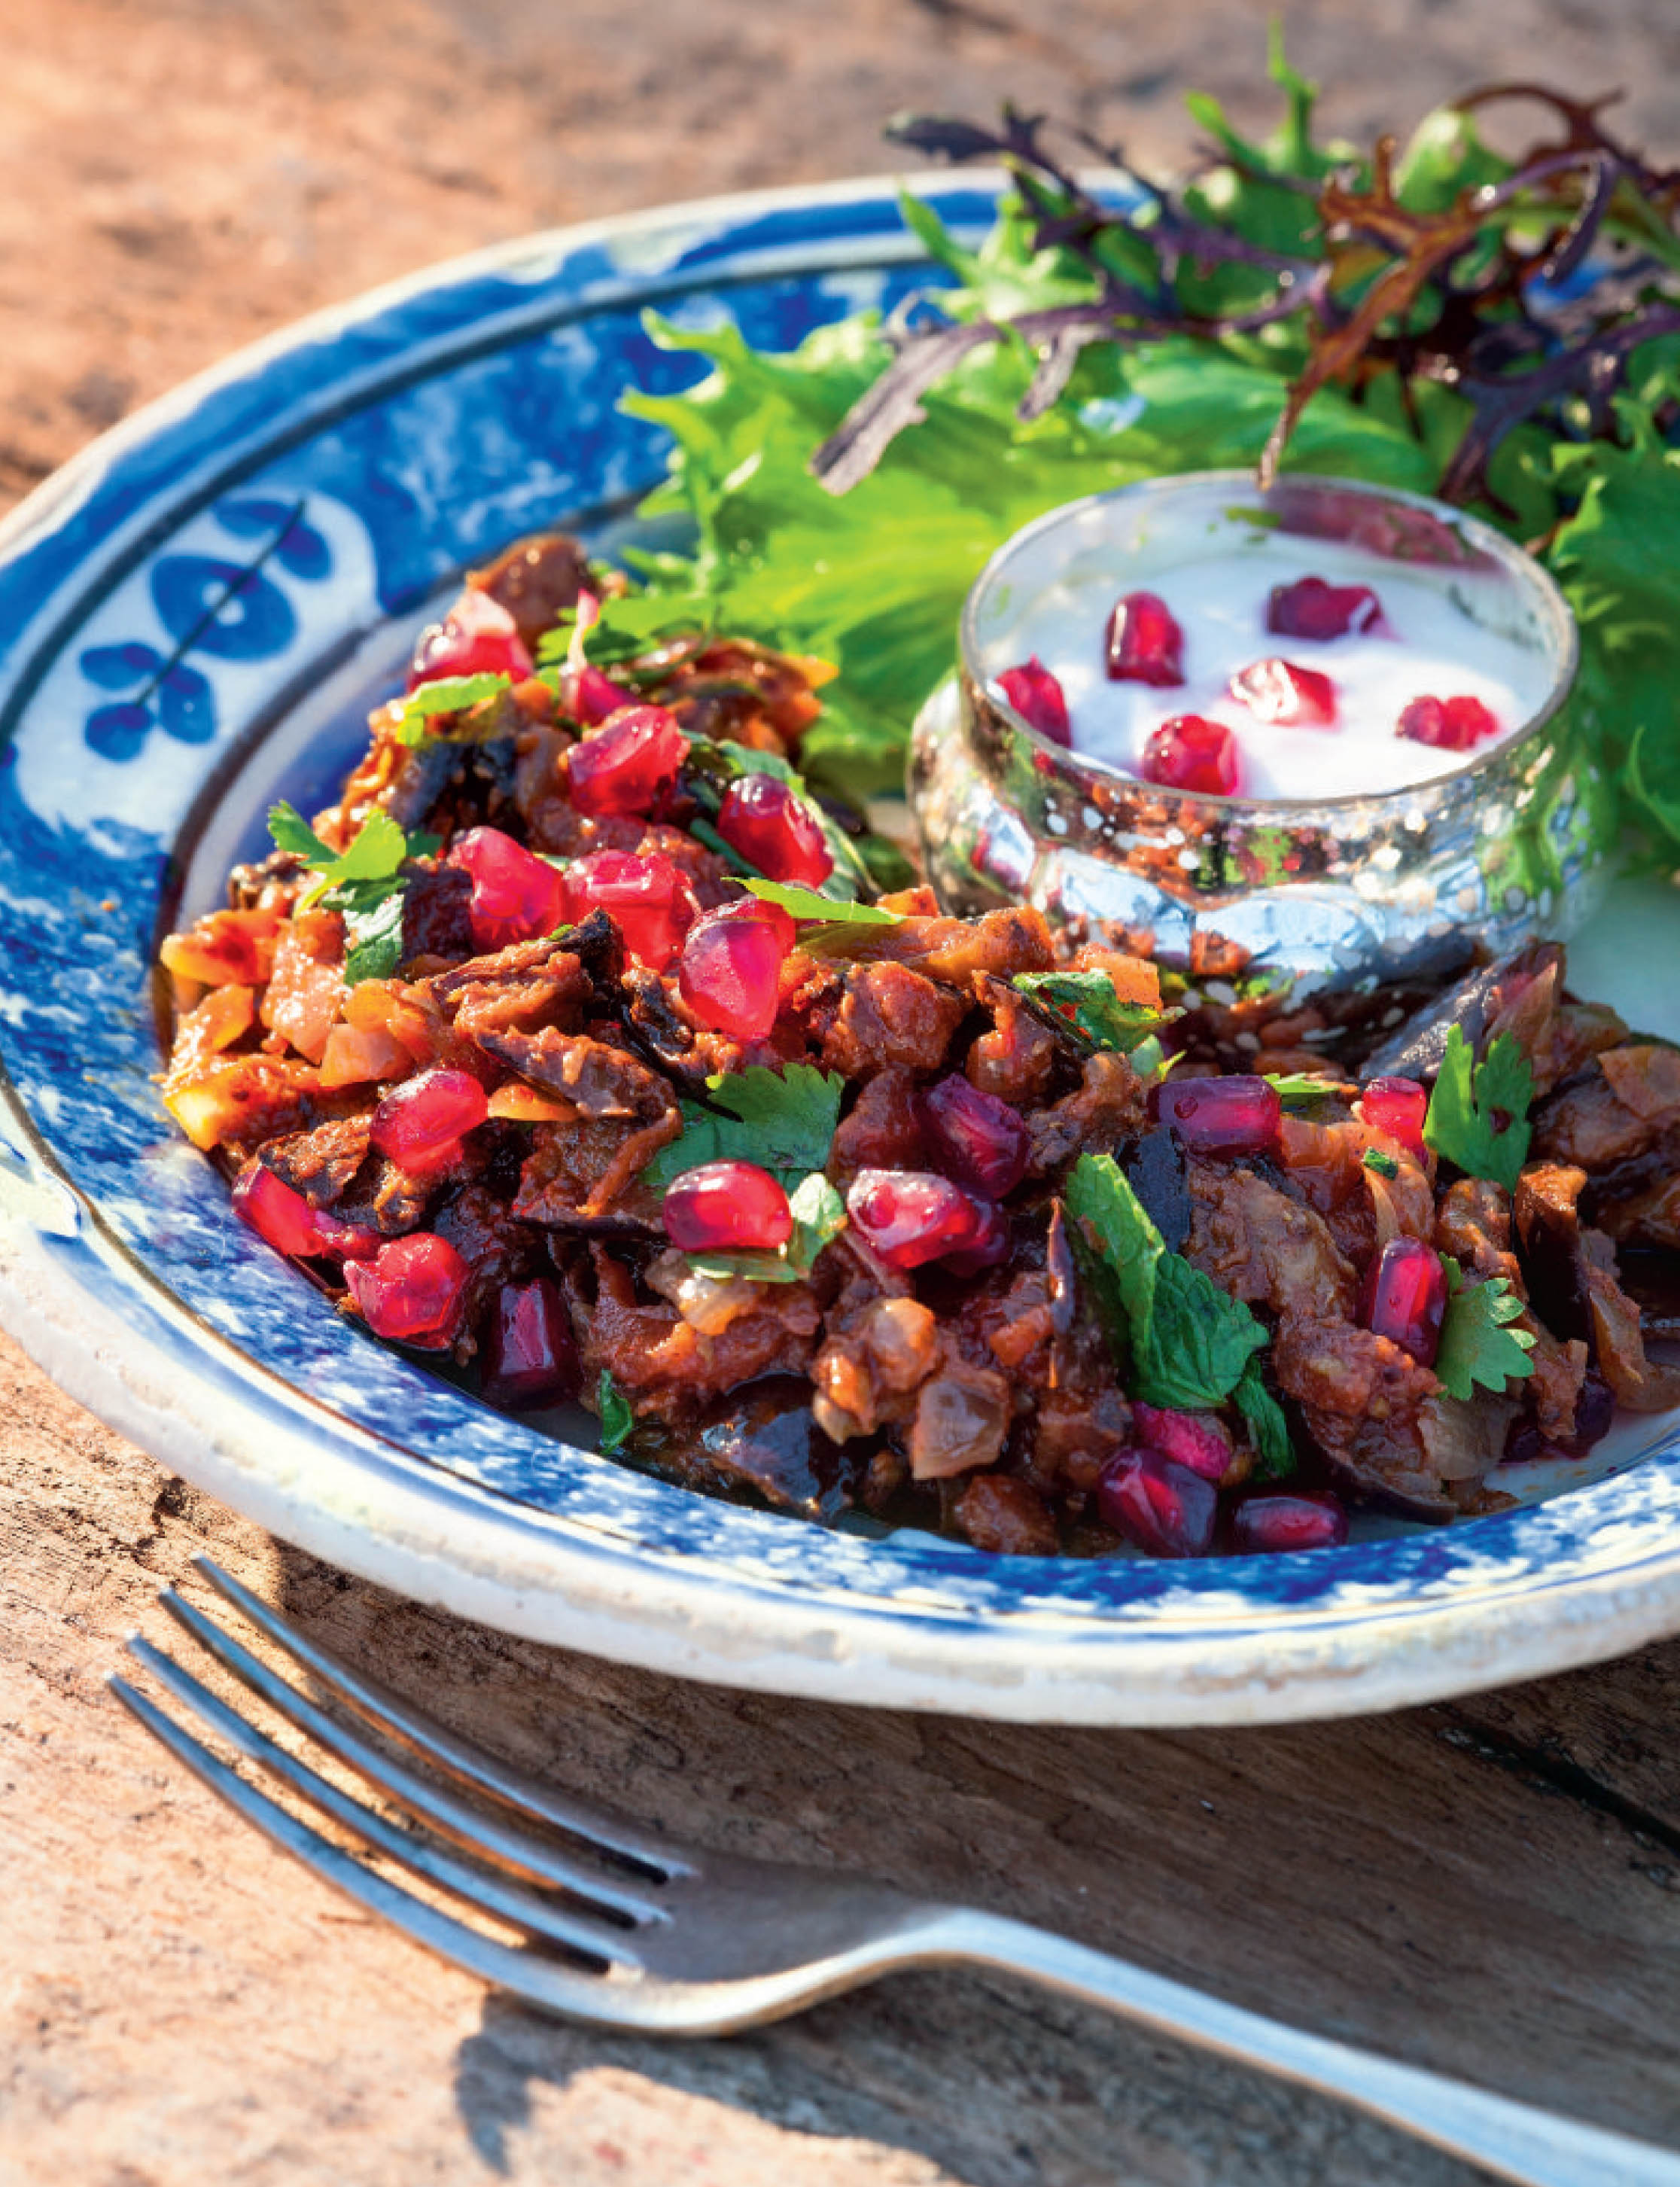 Spiced aubergine salad with pomegranate raita